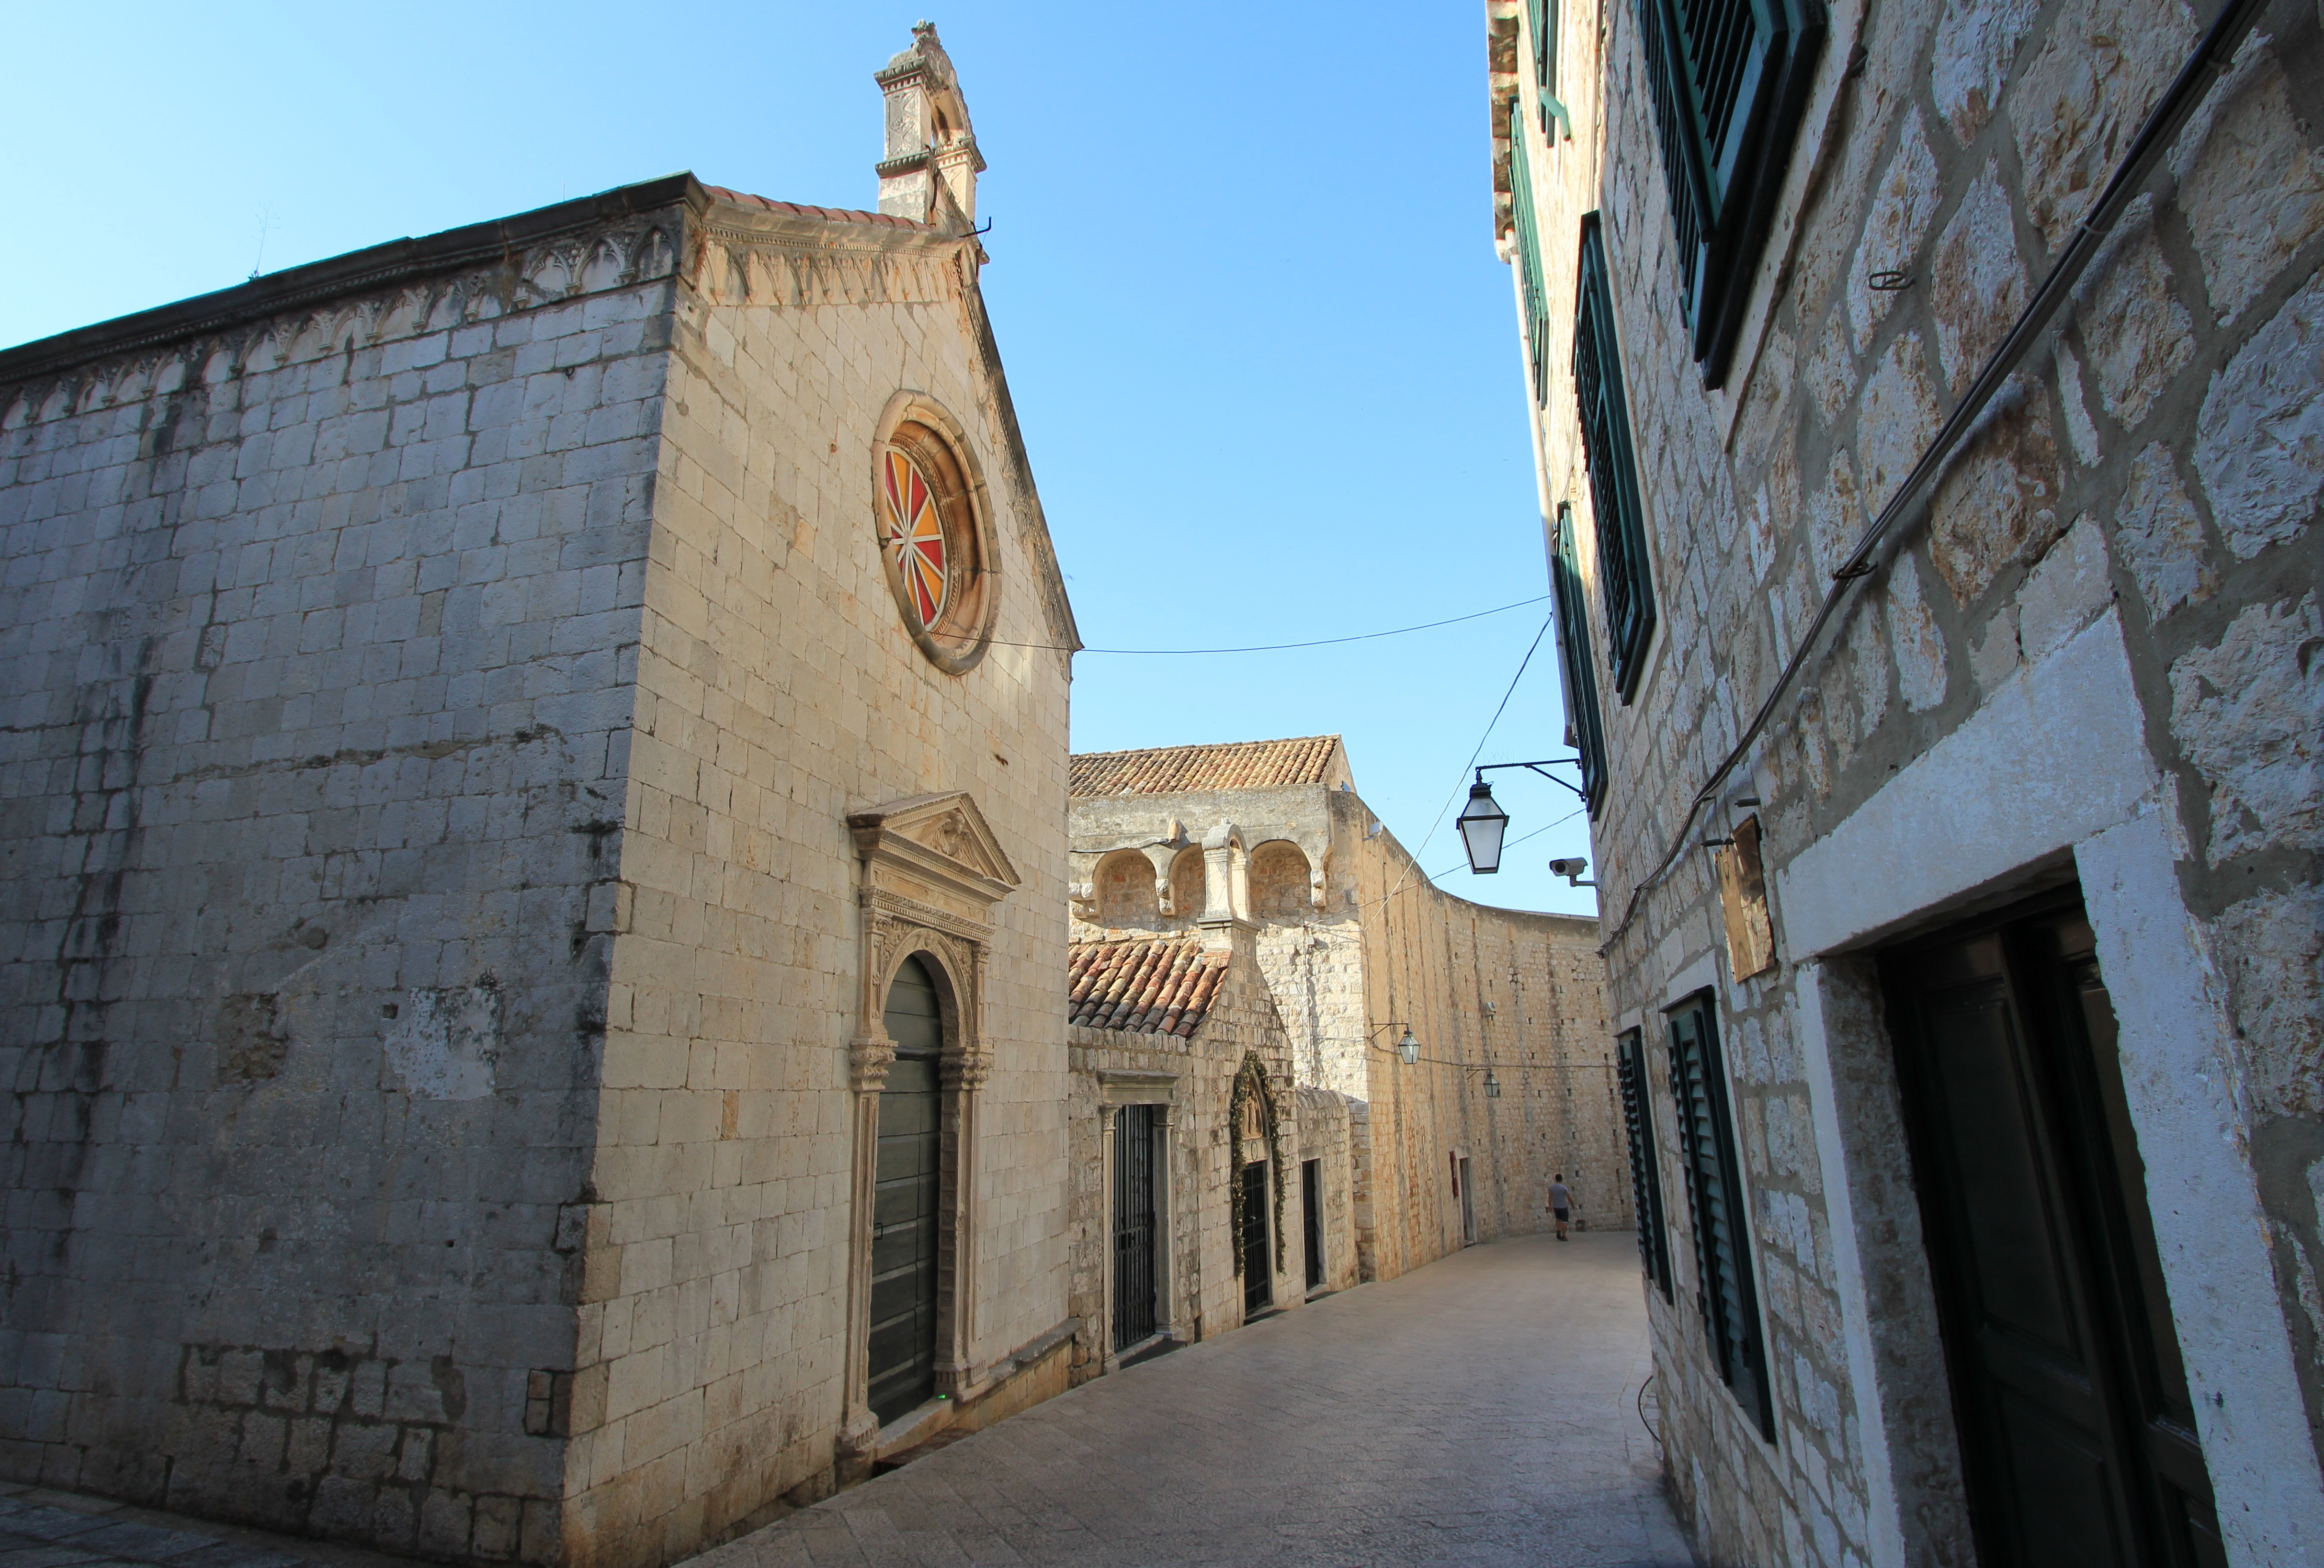 Into the Old City of Dubrovnik. The Chapels of Announcement and of St. Luke on Ul. Svetog Dominika.